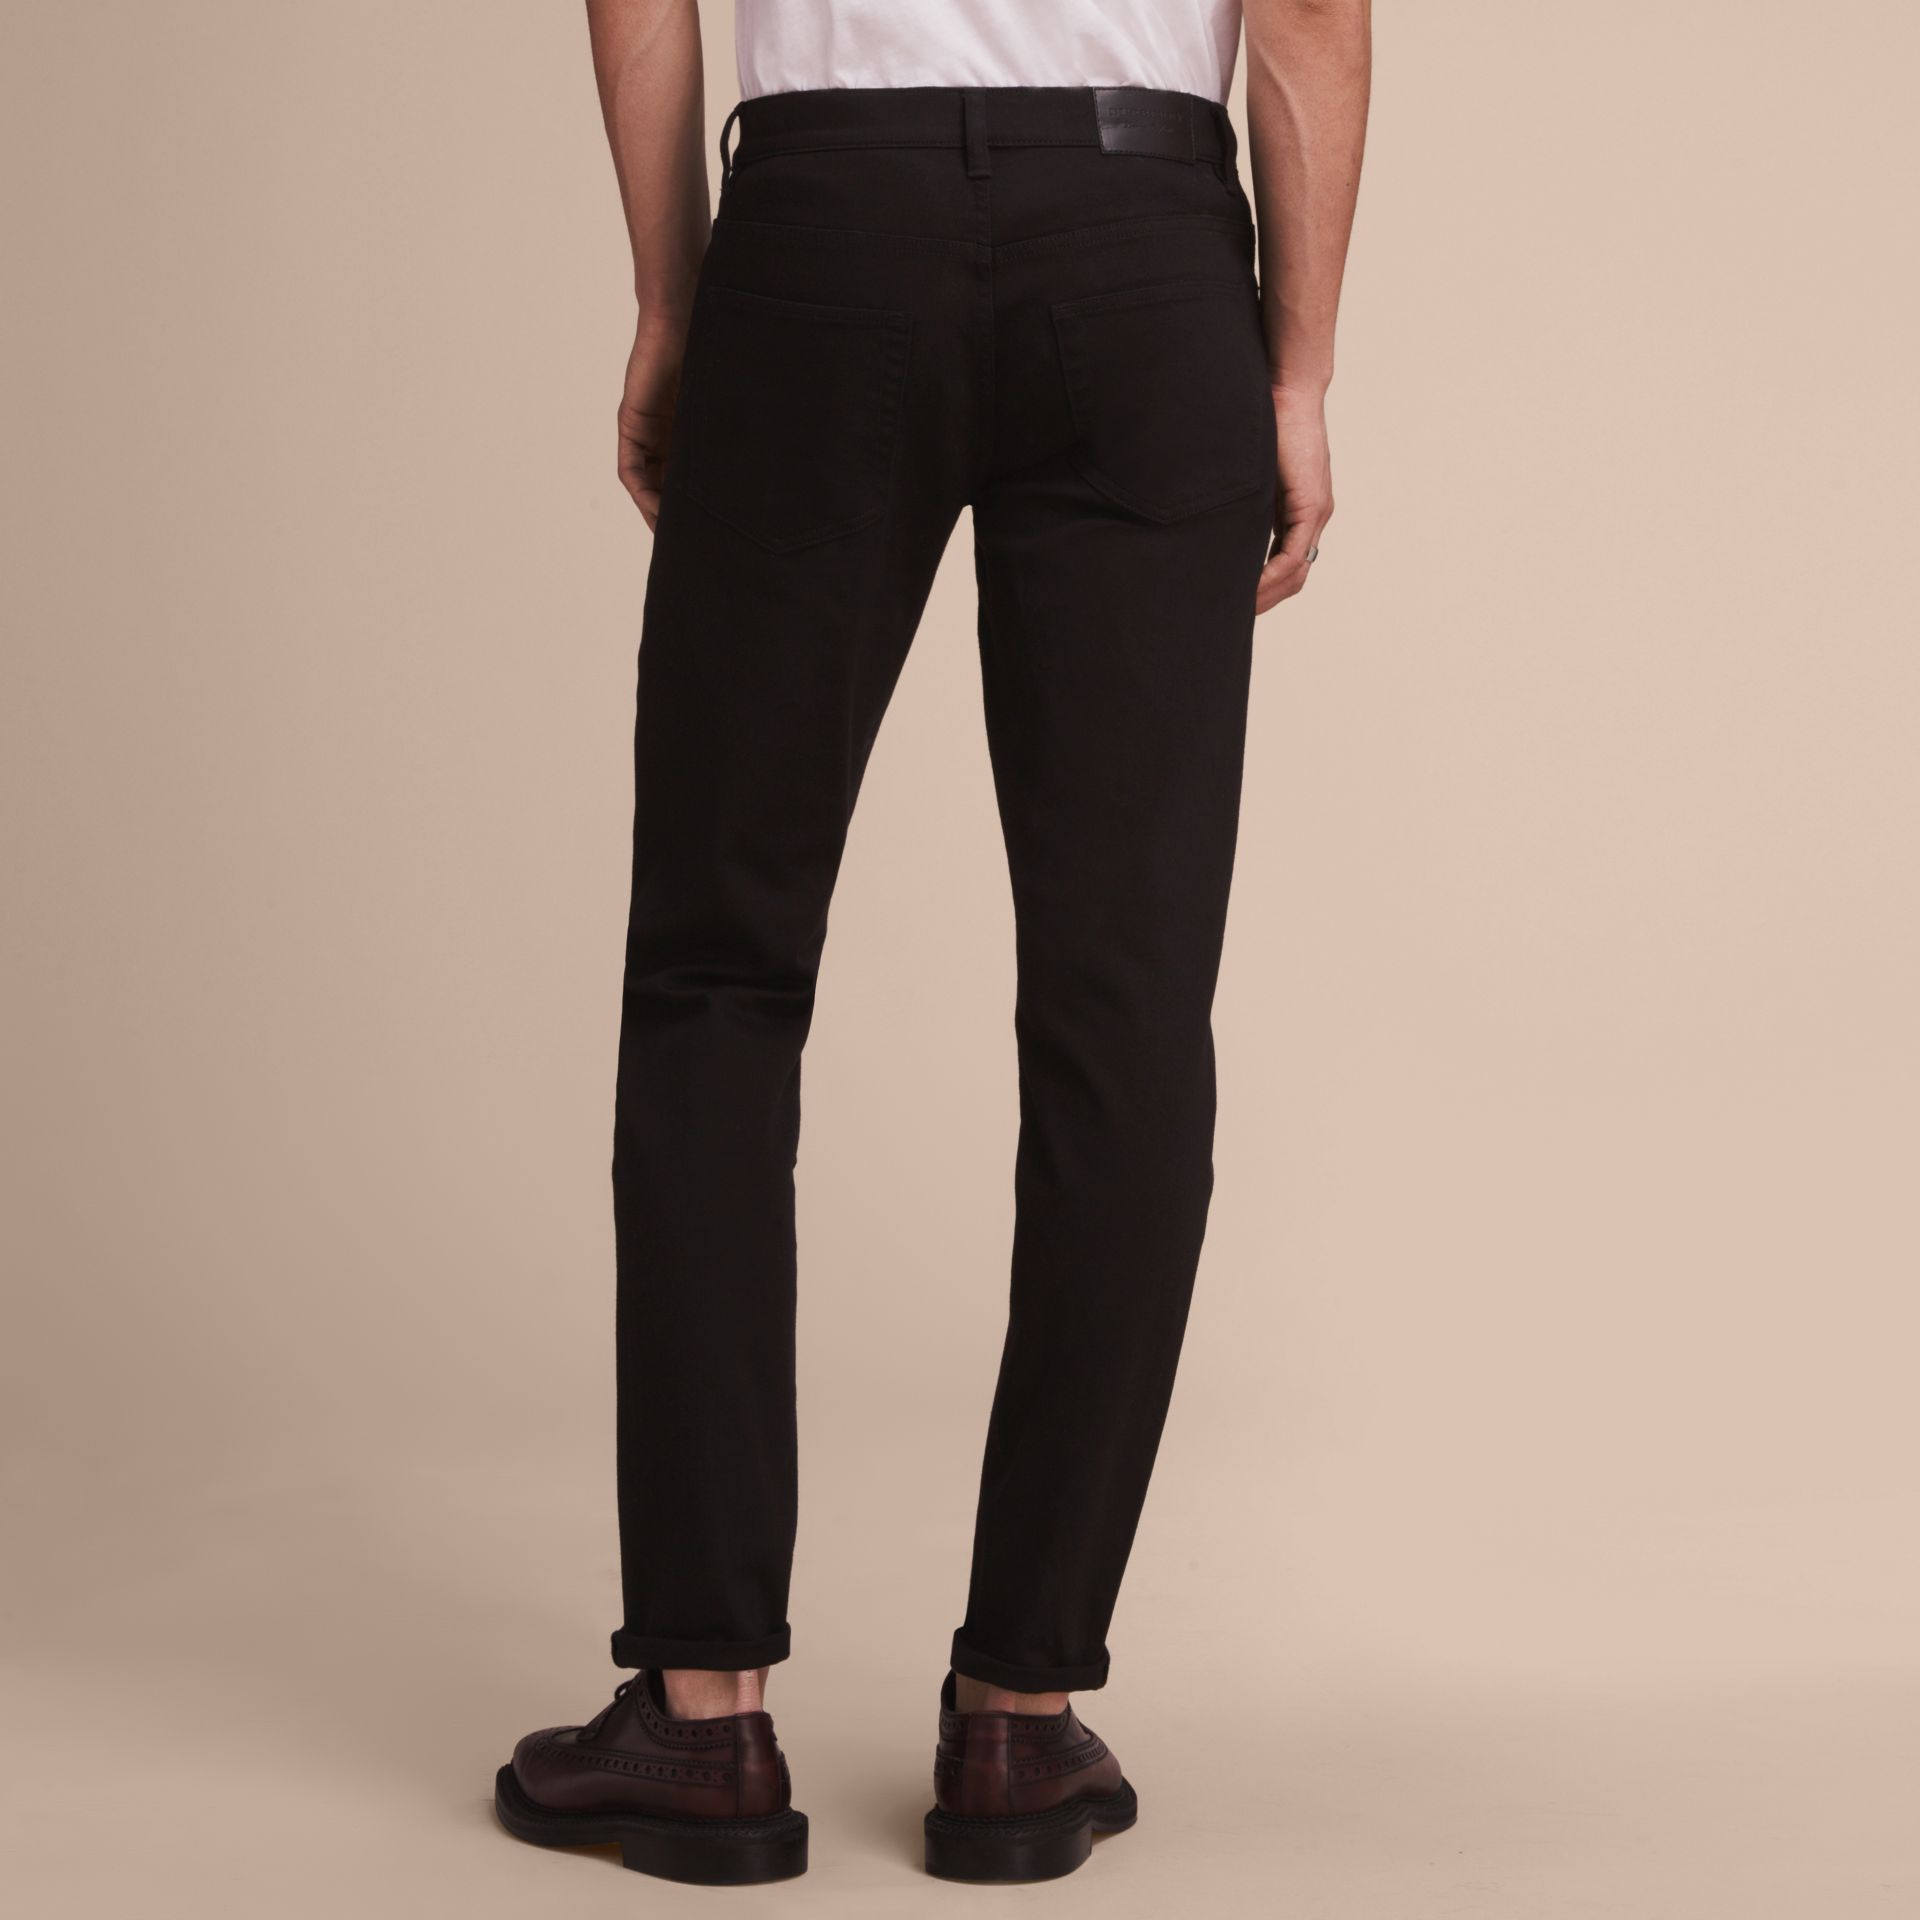 Relaxed Fit Stretch Jeans in Black - Men | Burberry - gallery image 3